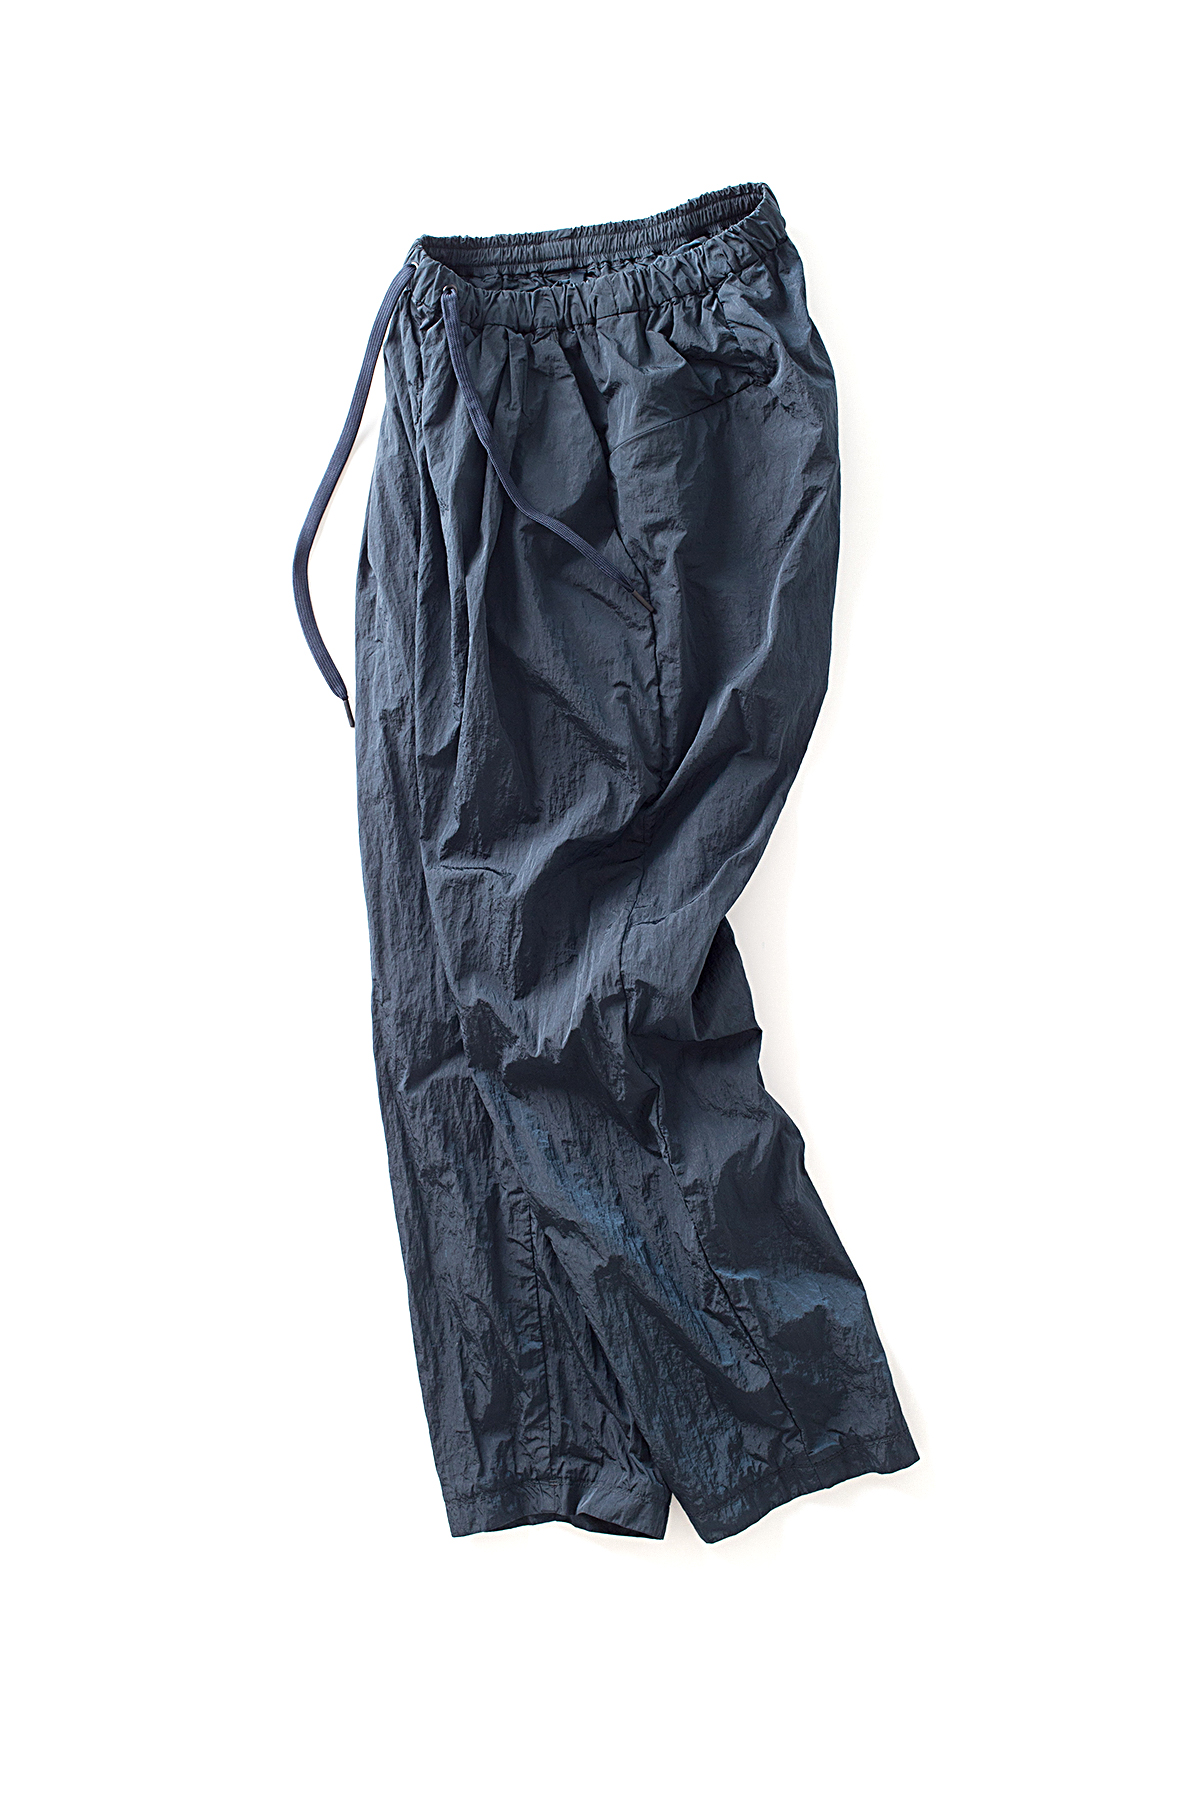 TEATORA : Wallet Pants CARGO LP (Metalic Forest)